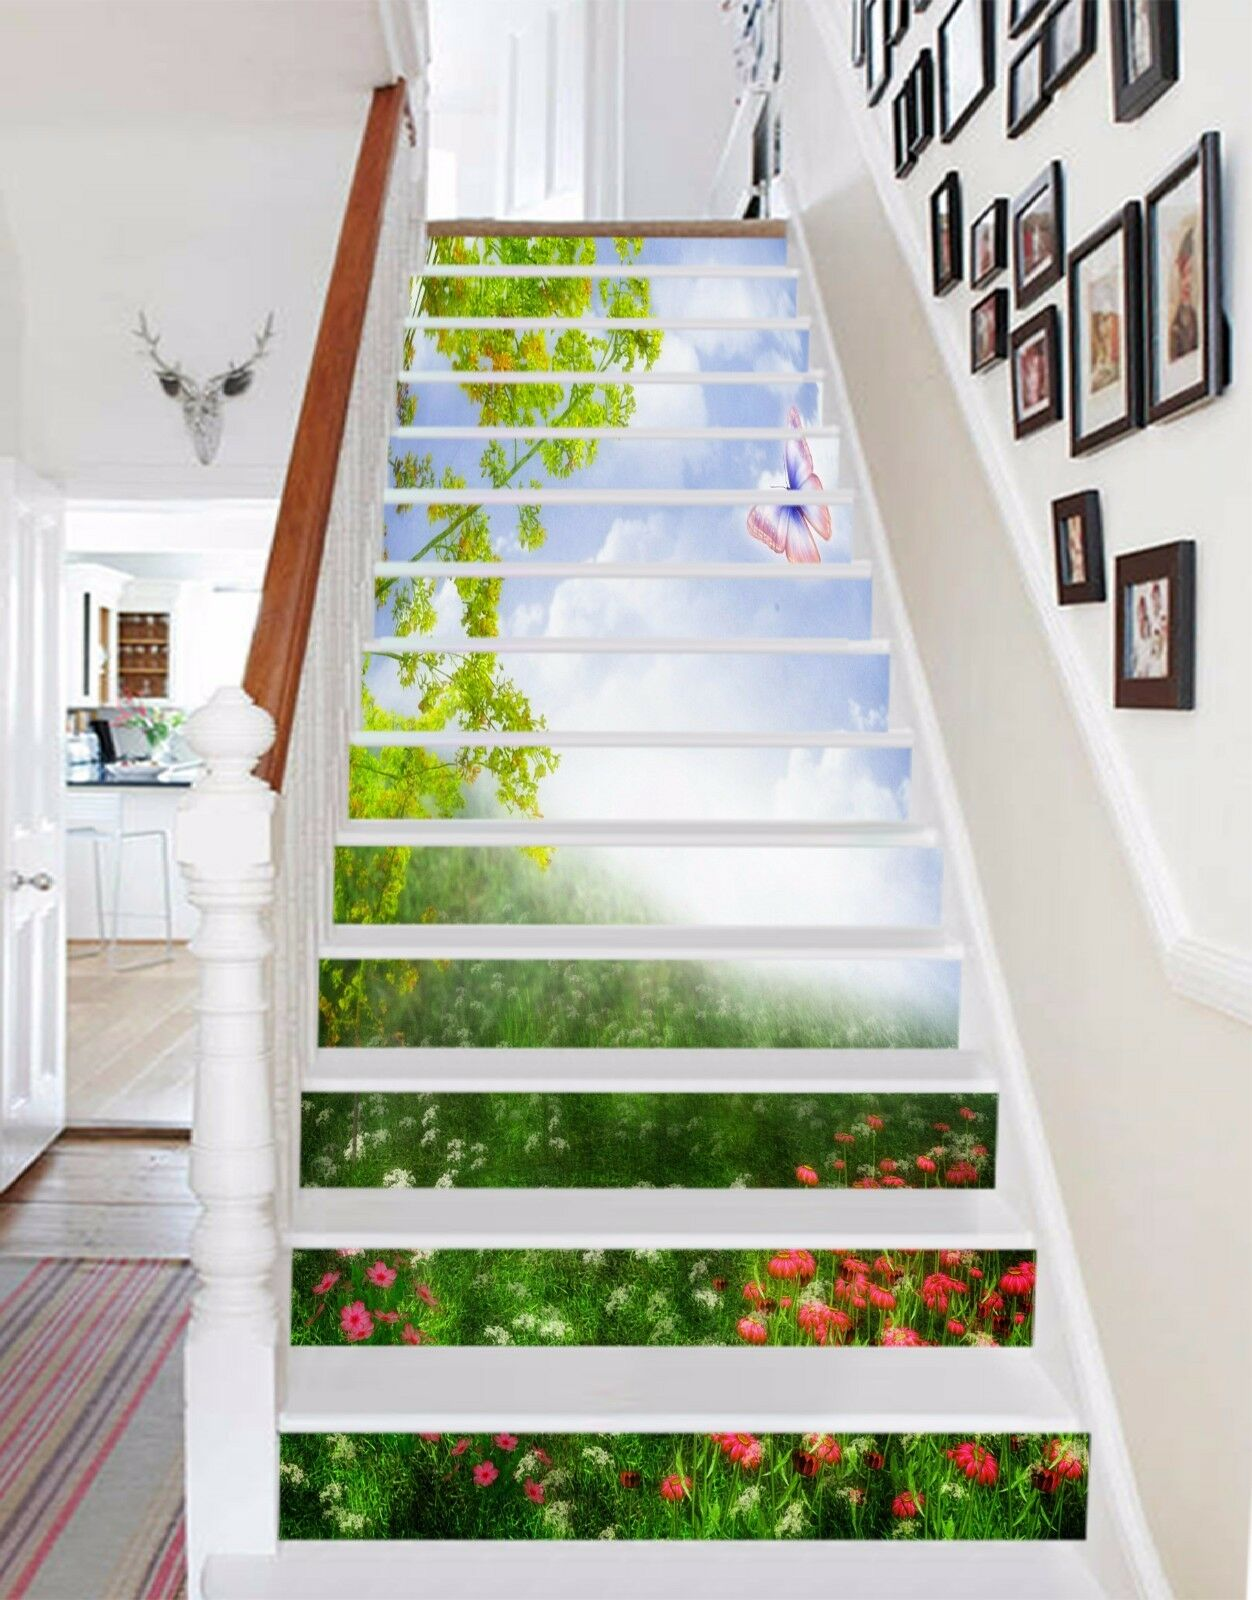 3D Flower Butterfly Stair Risers Decoration Photo Mural Vinyl Decal Wallpaper UK